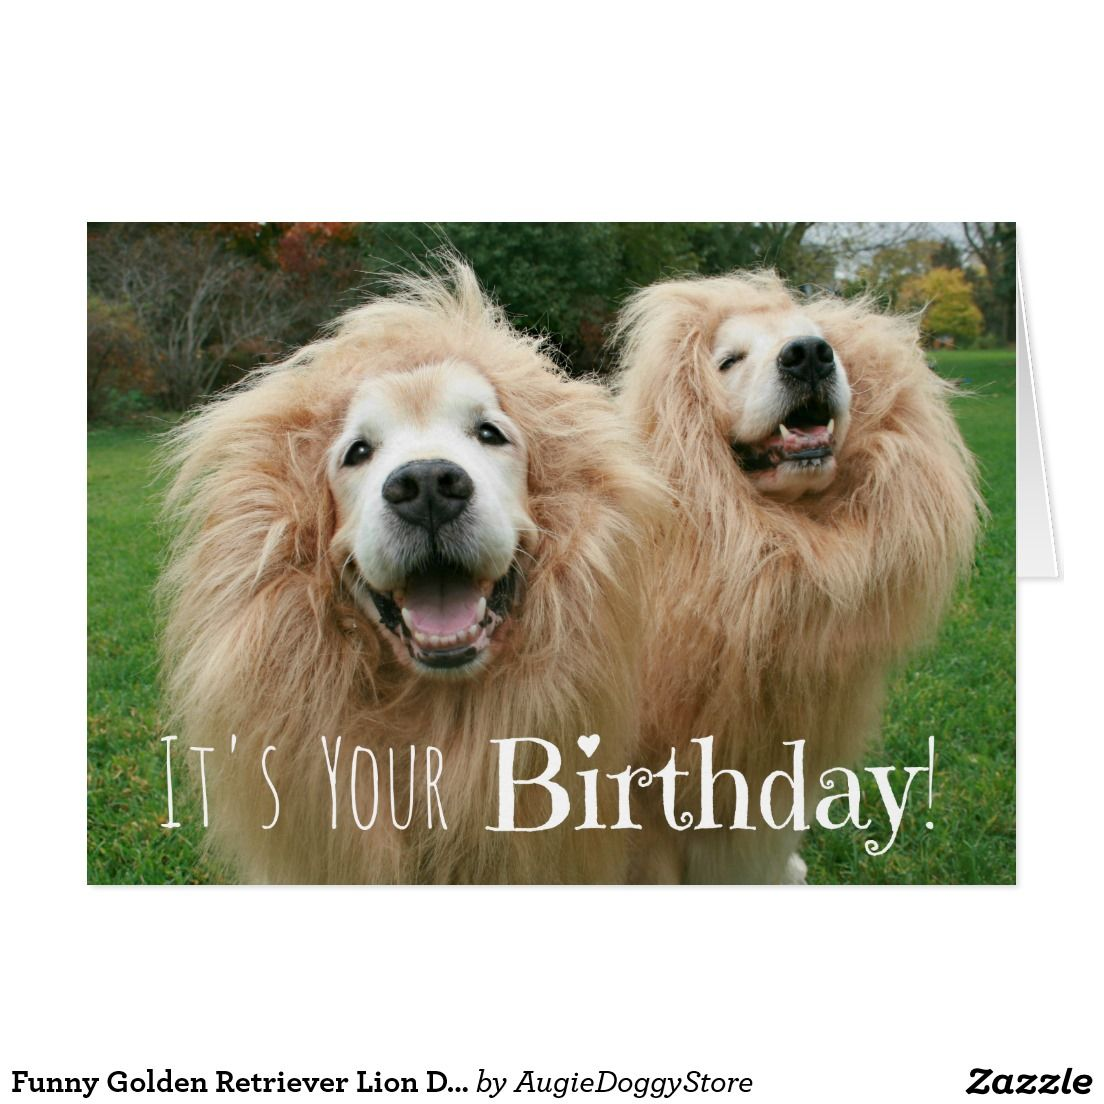 Funny Golden Retriever Lion Dogs Birthday Card Pinterest Funny